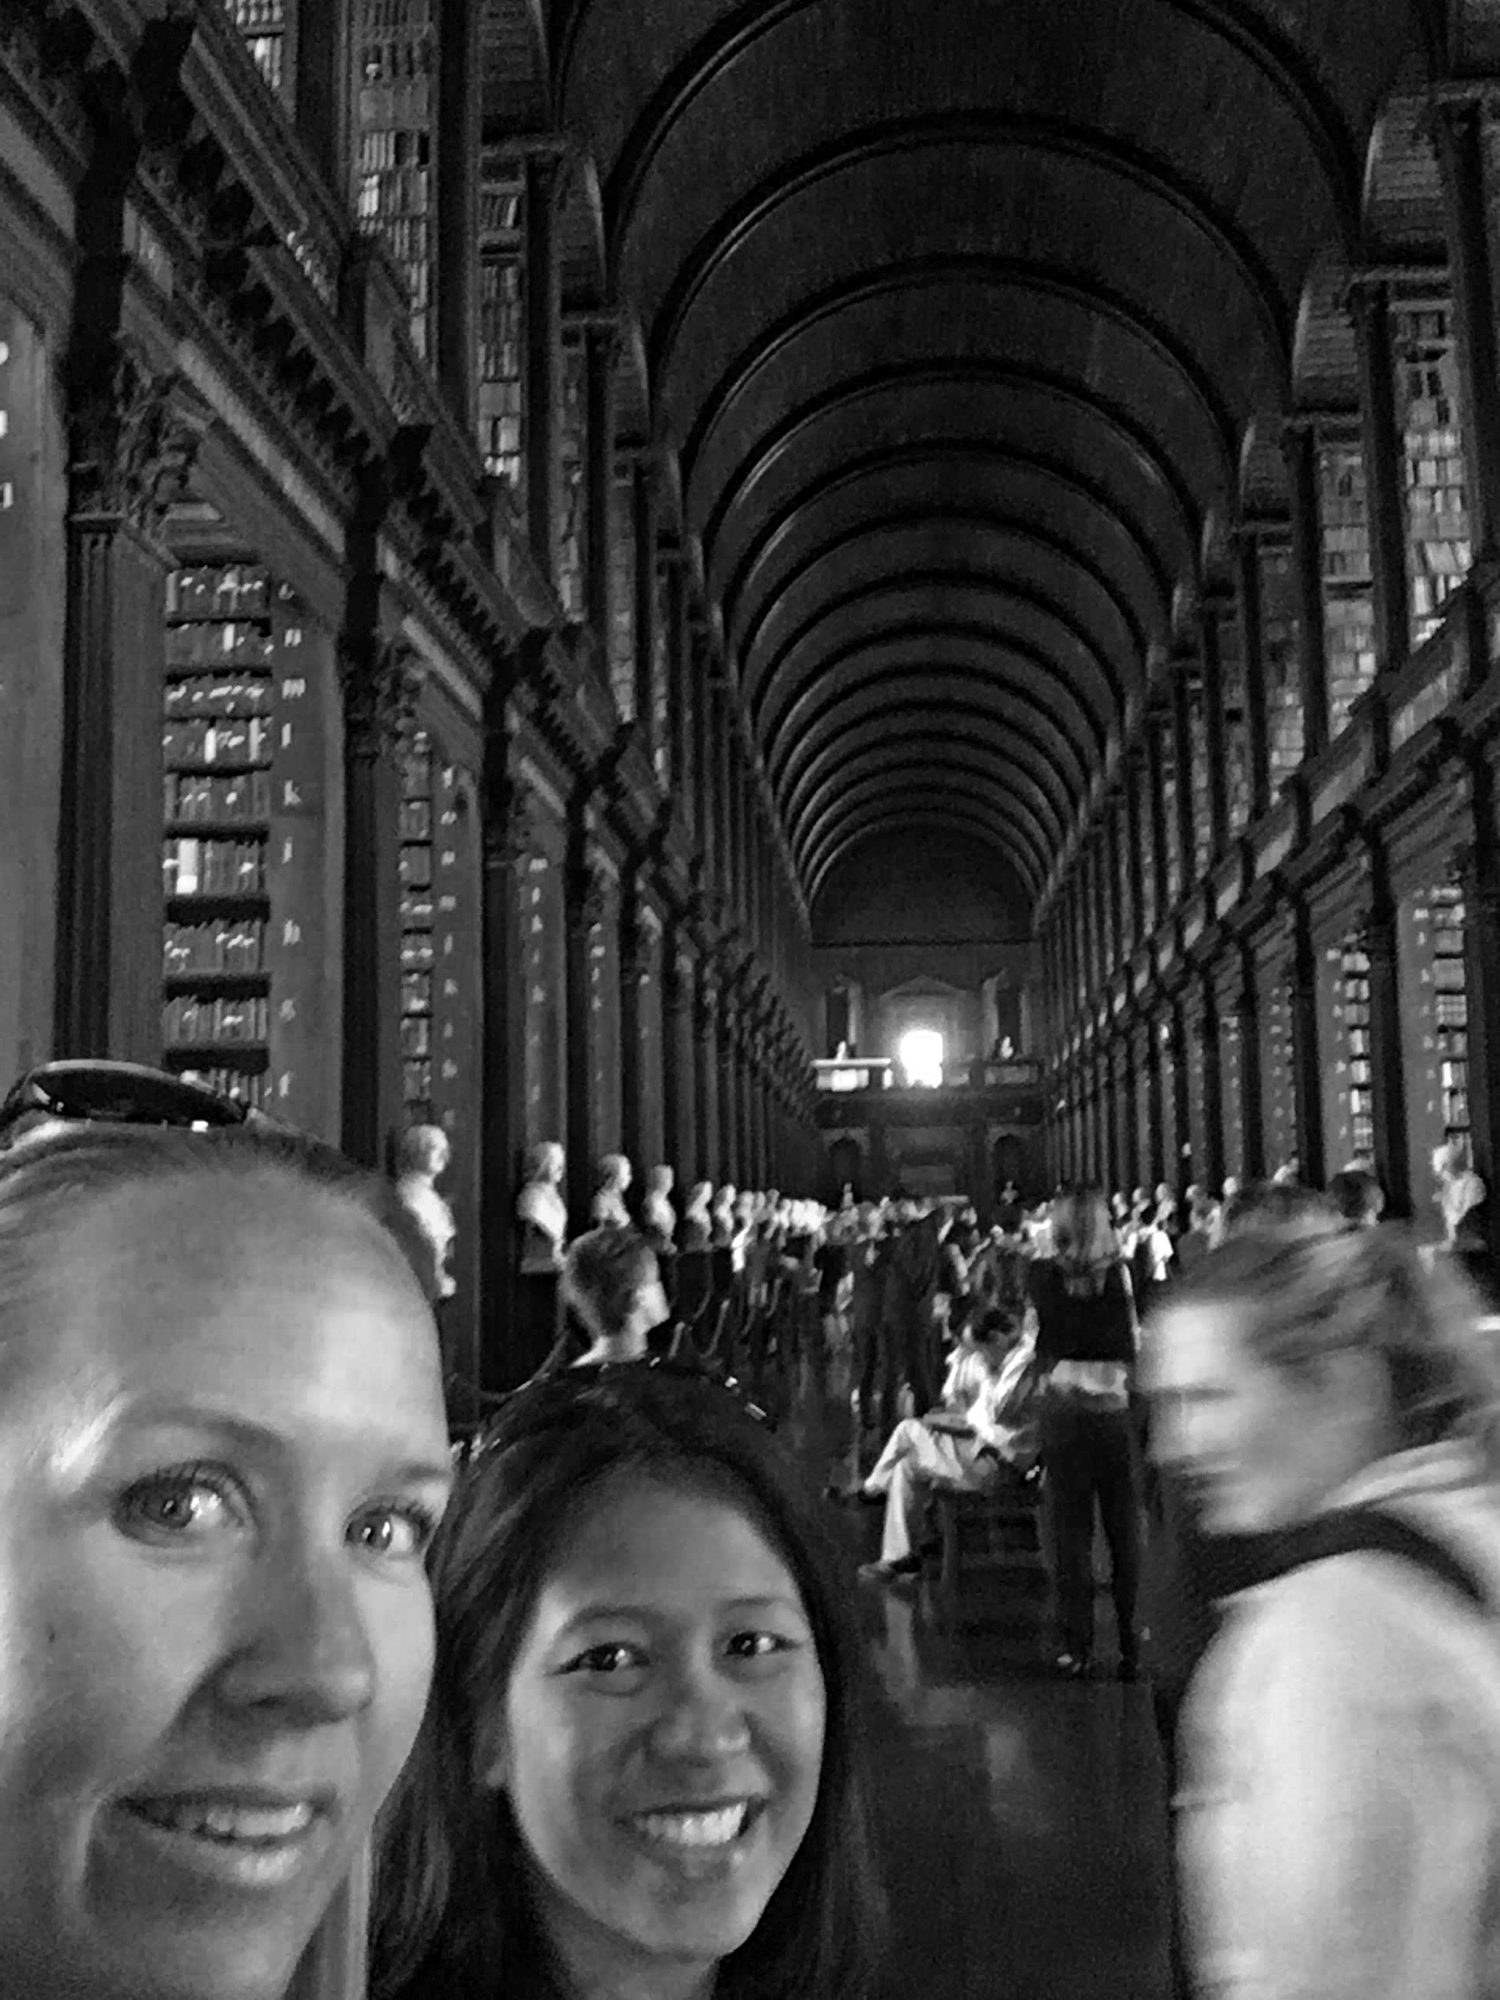 Mrs. Alt and her best friend in the long library at Trinity college